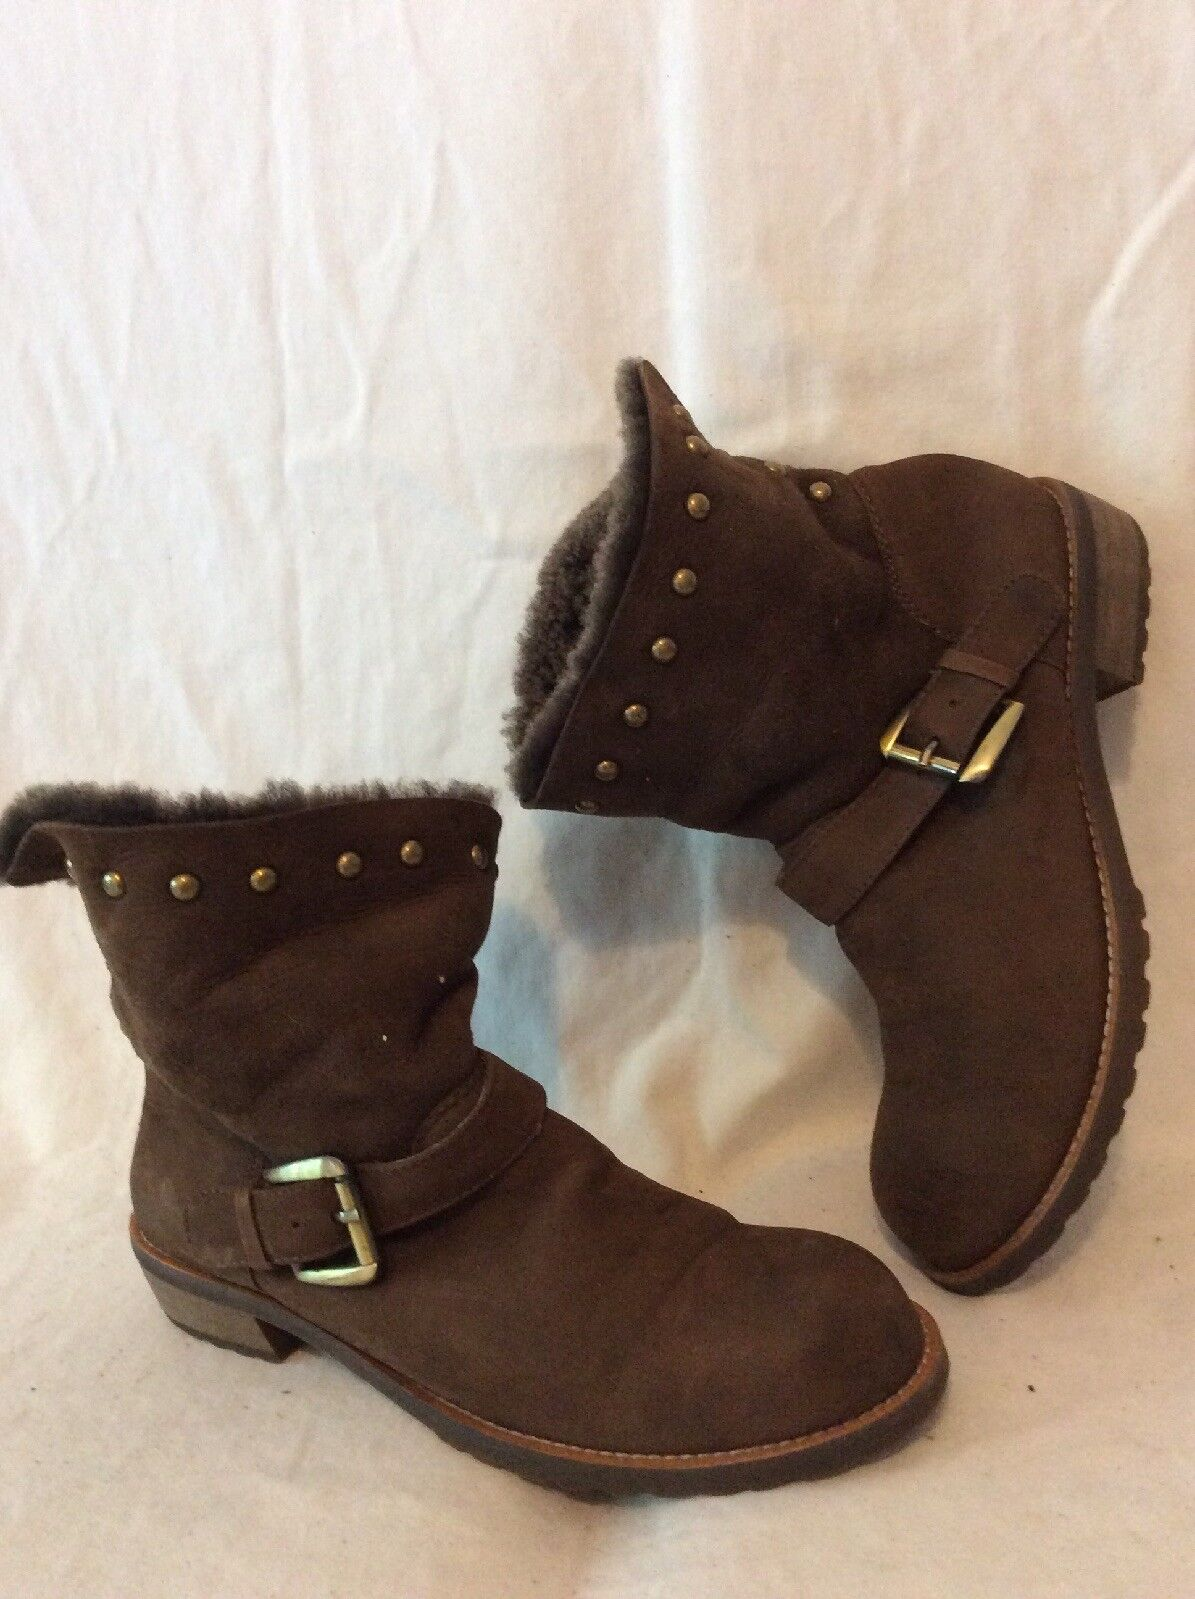 Jipi Japa Brown Ankle Leather Boots Size 36